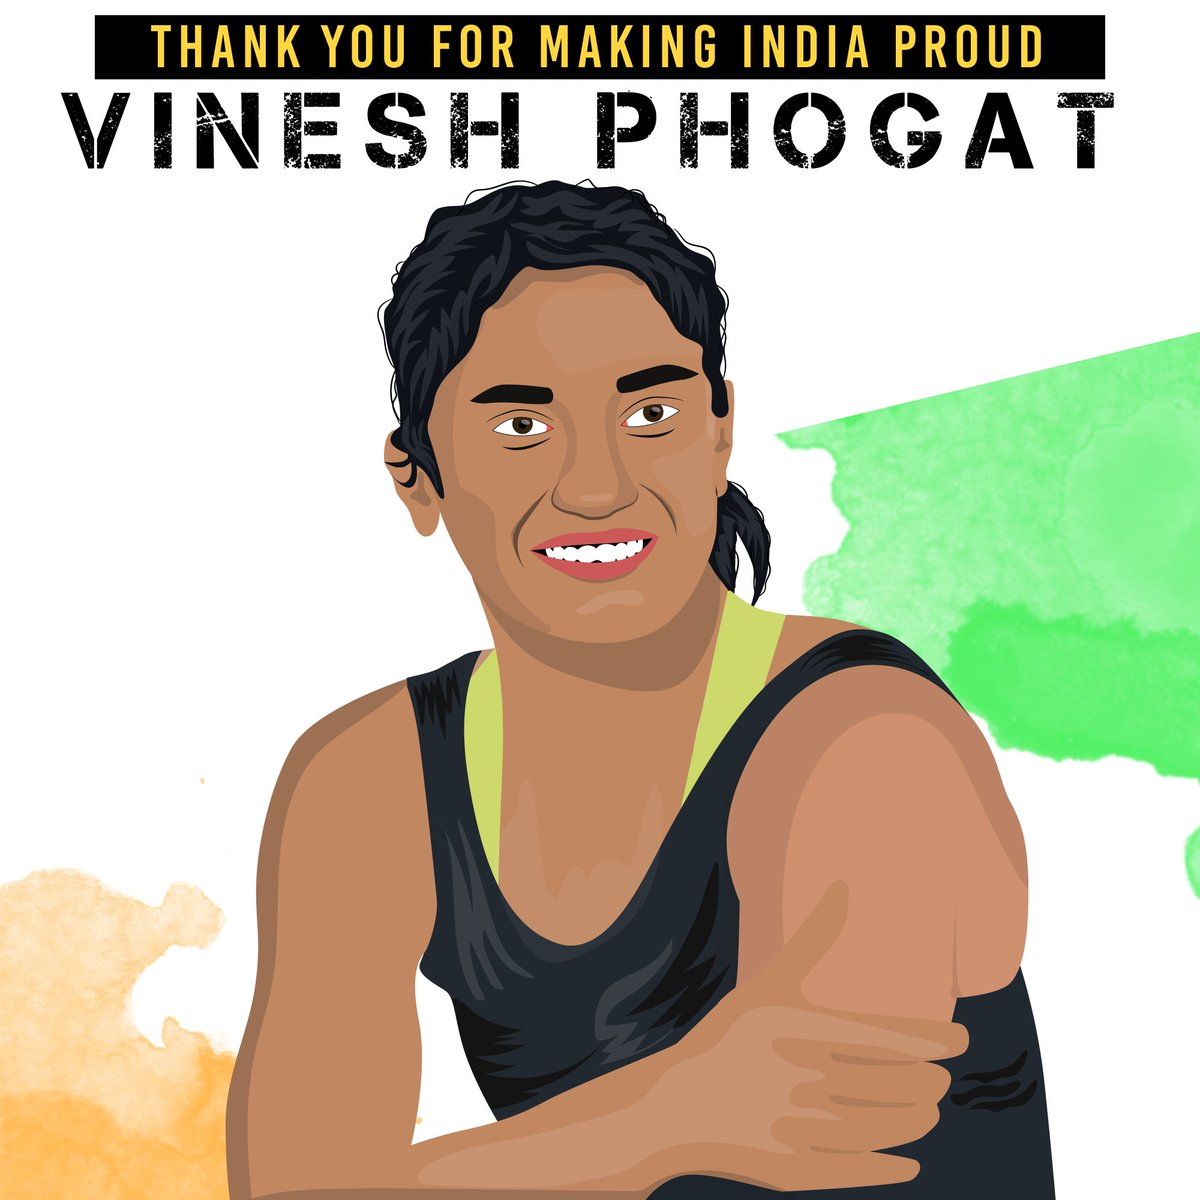 Thank u for making Indians proud. Take a bow! #AsianGames2018 #VineshPhogat @Phogat_Vinesh #Wrestling #WomenPower